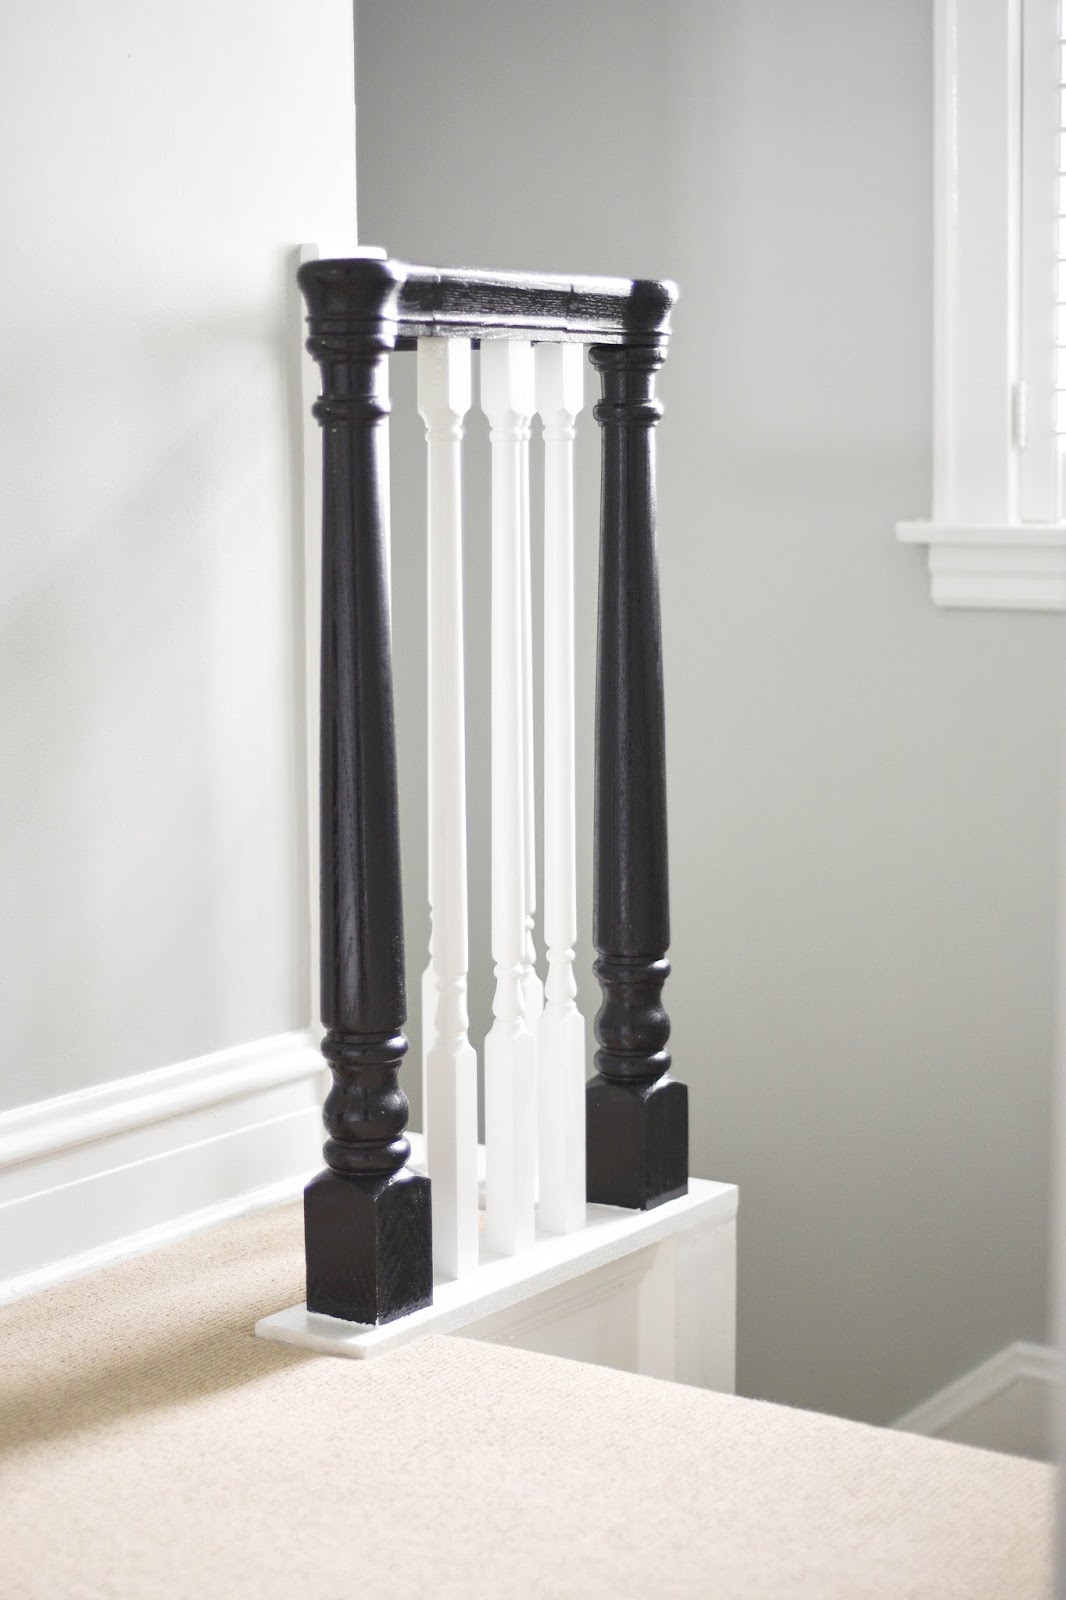 Updating older staircases, painting staircase banisters black with white spindles, #DIY #oldhomes #staircases www.homewithkeki.com